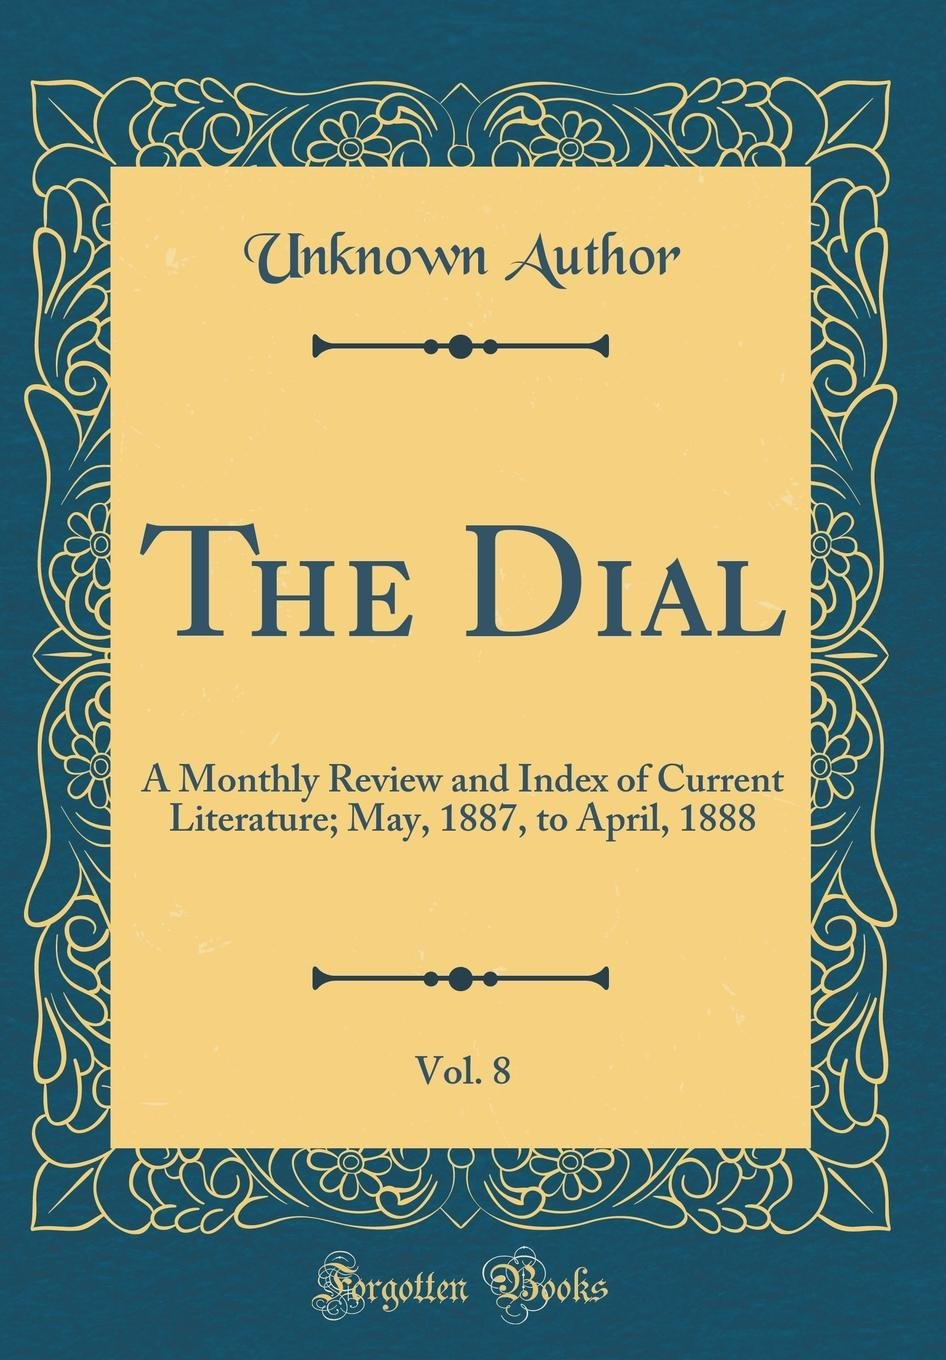 Download The Dial, Vol. 8: A Monthly Review and Index of Current Literature; May, 1887, to April, 1888 (Classic Reprint) pdf